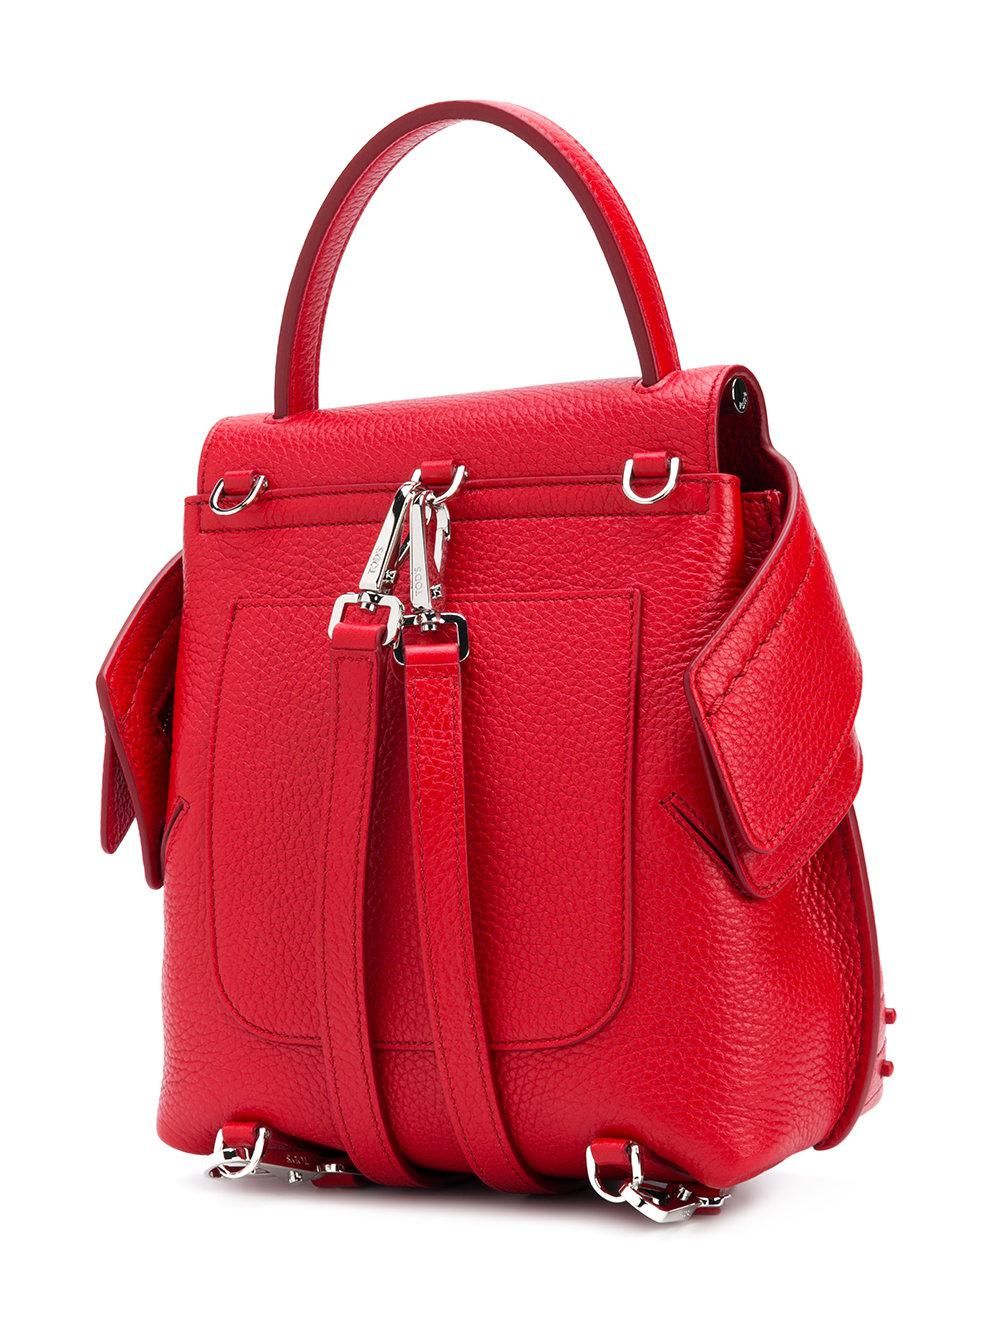 f8a379c2cc Gallery. Previously sold at: Farfetch, Tod's · Women's Mini Backpack